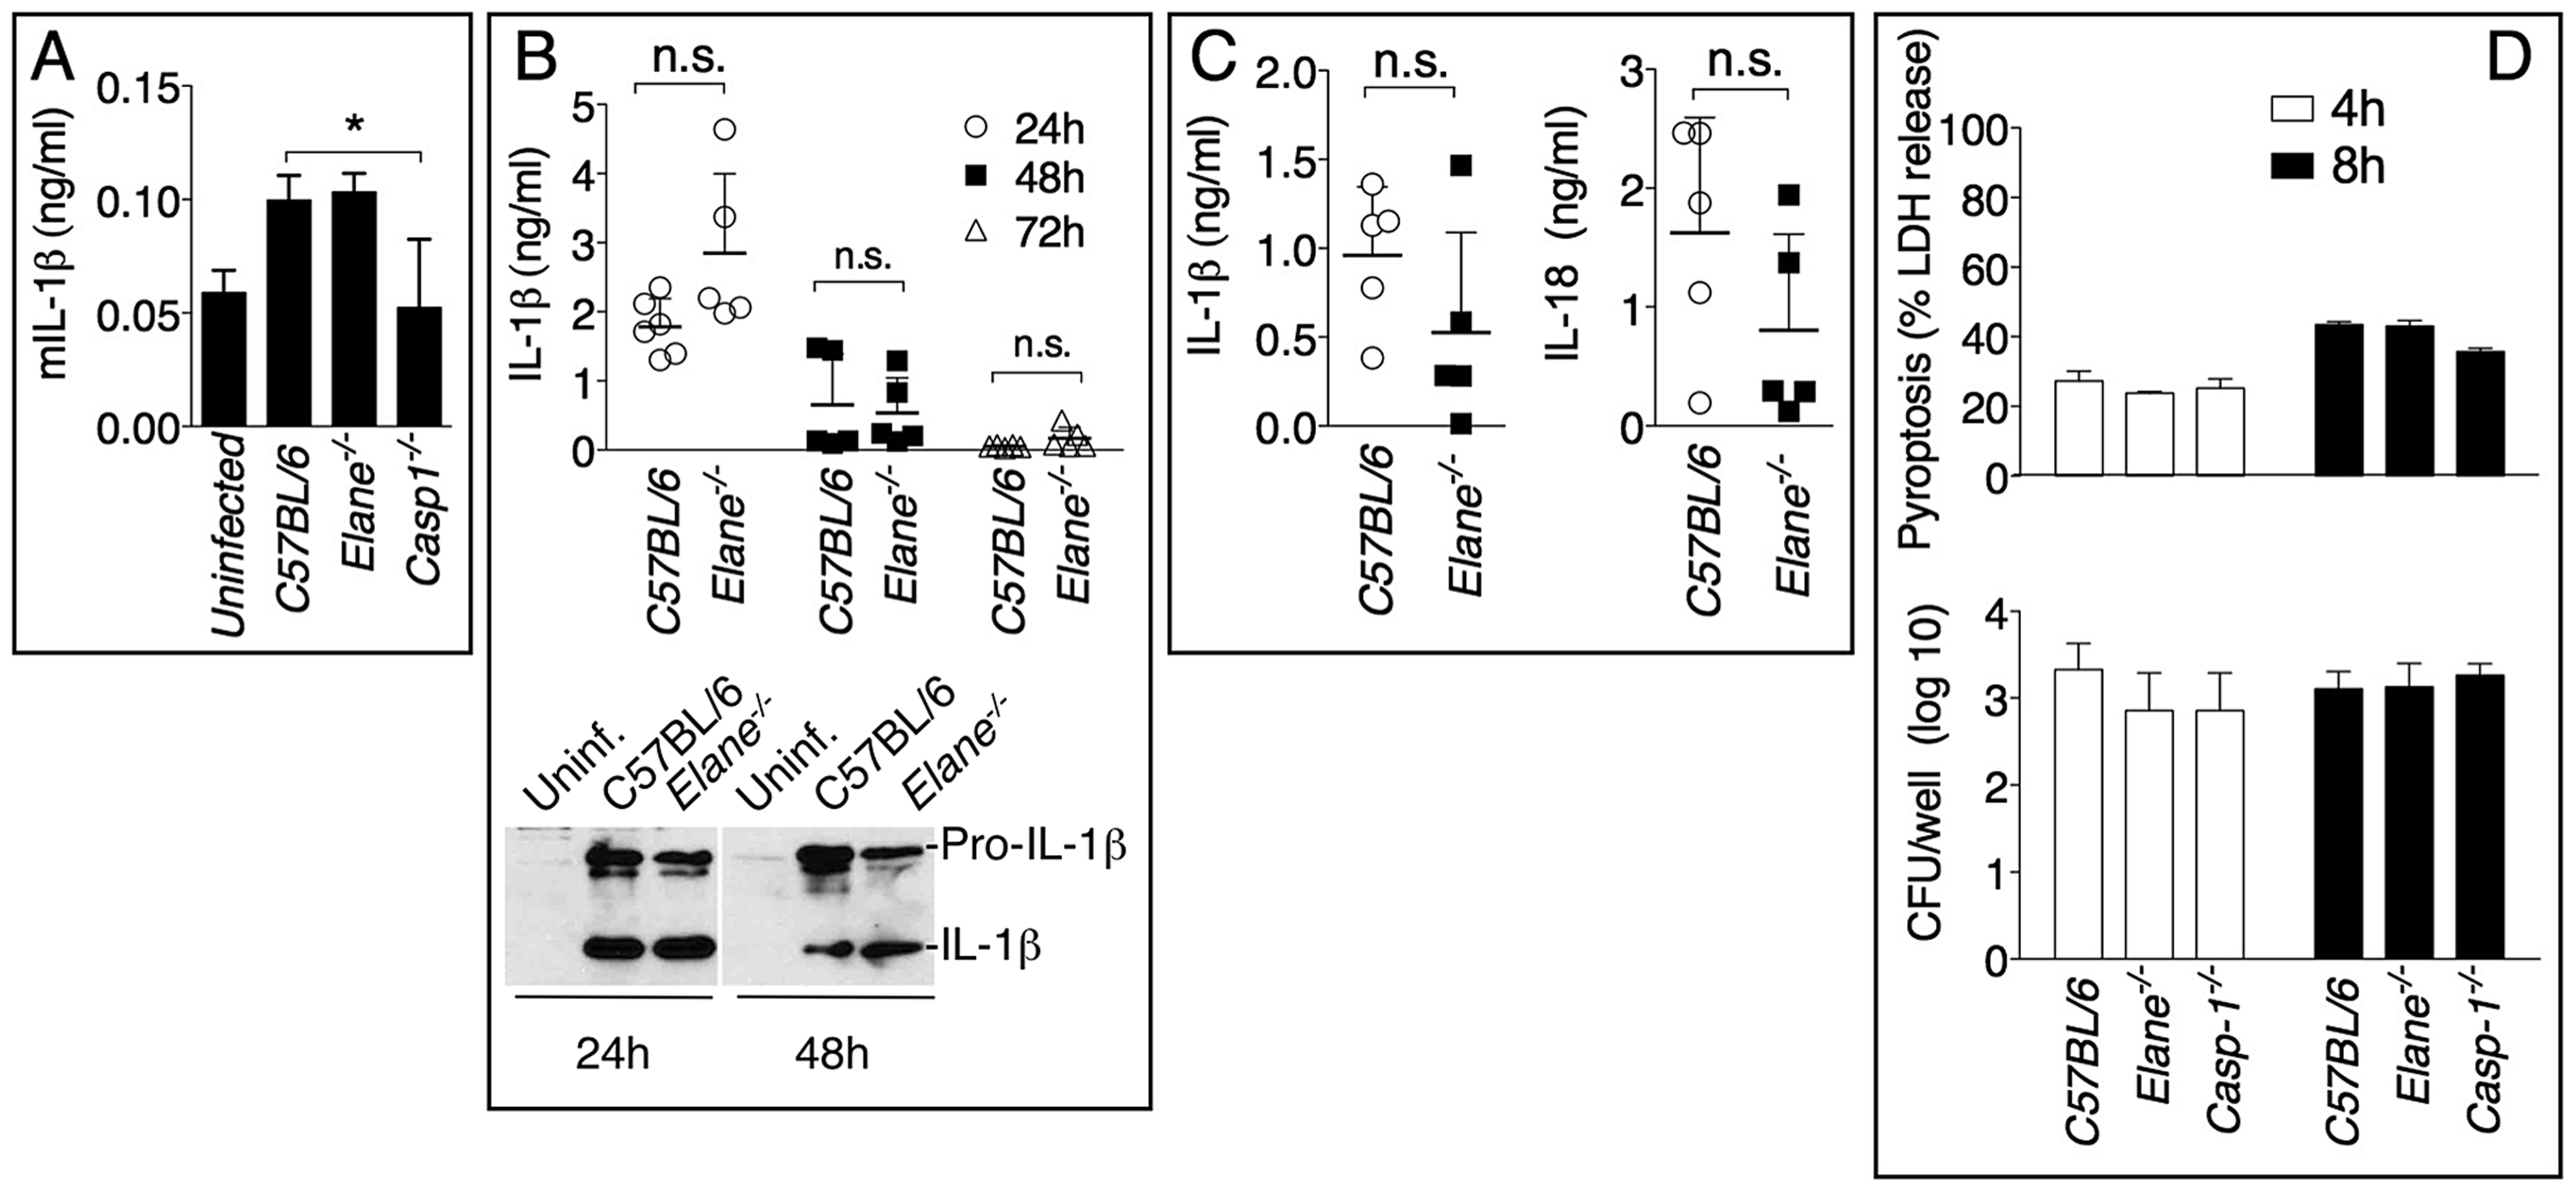 Role of elastase in IL-1β and IL-18 processing and pyroptosis.